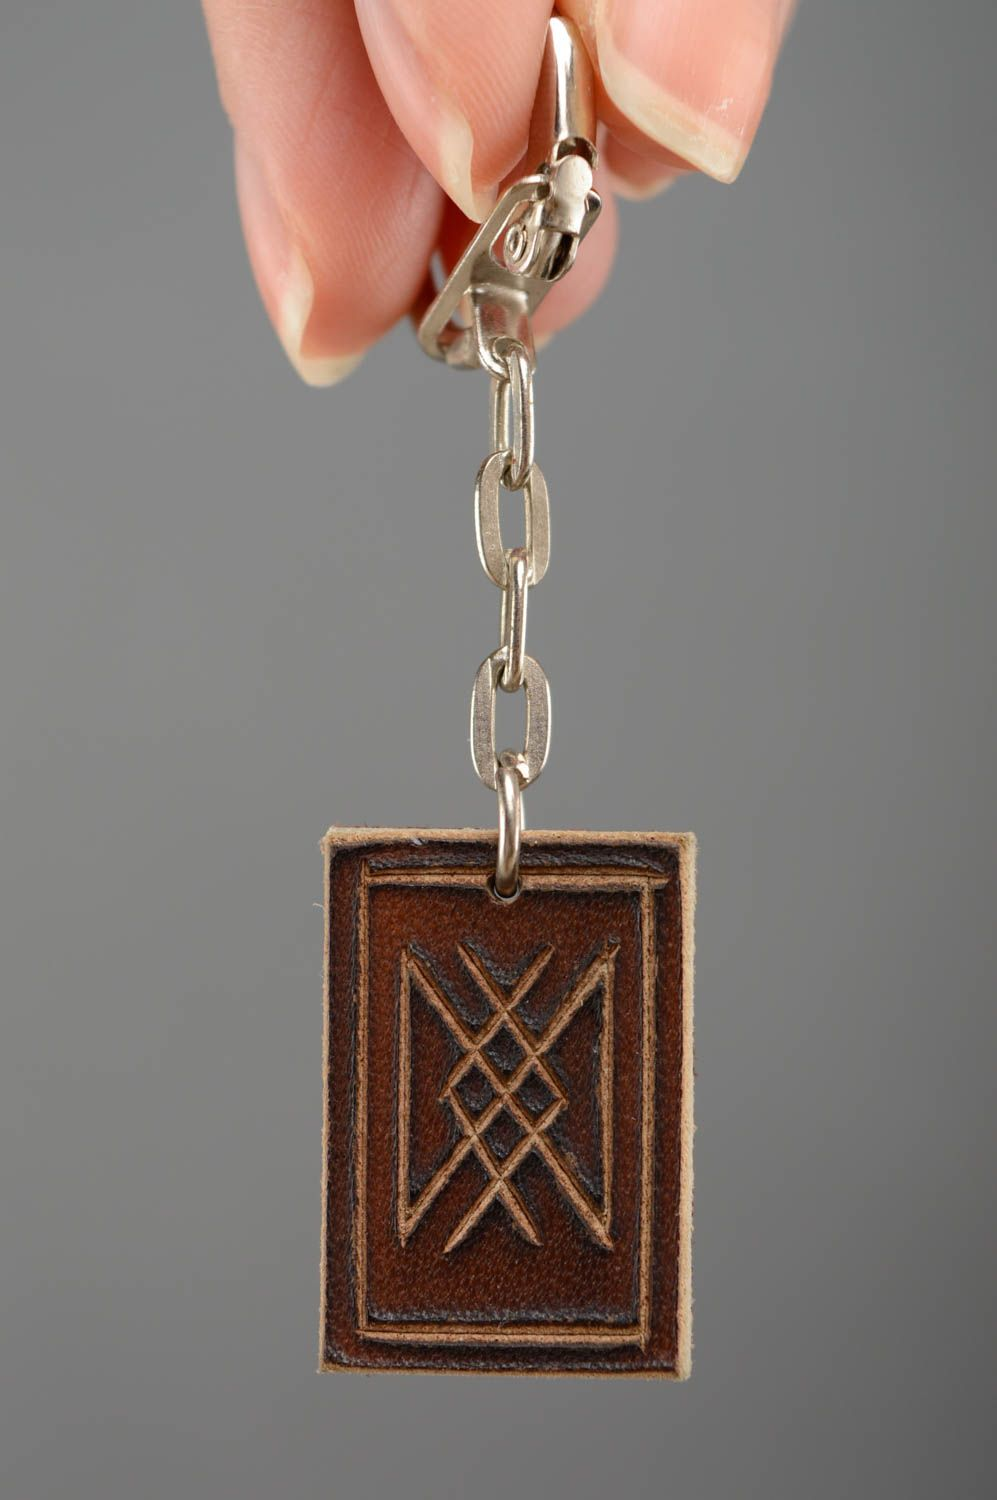 Leather keychain with runes for longevity photo 3